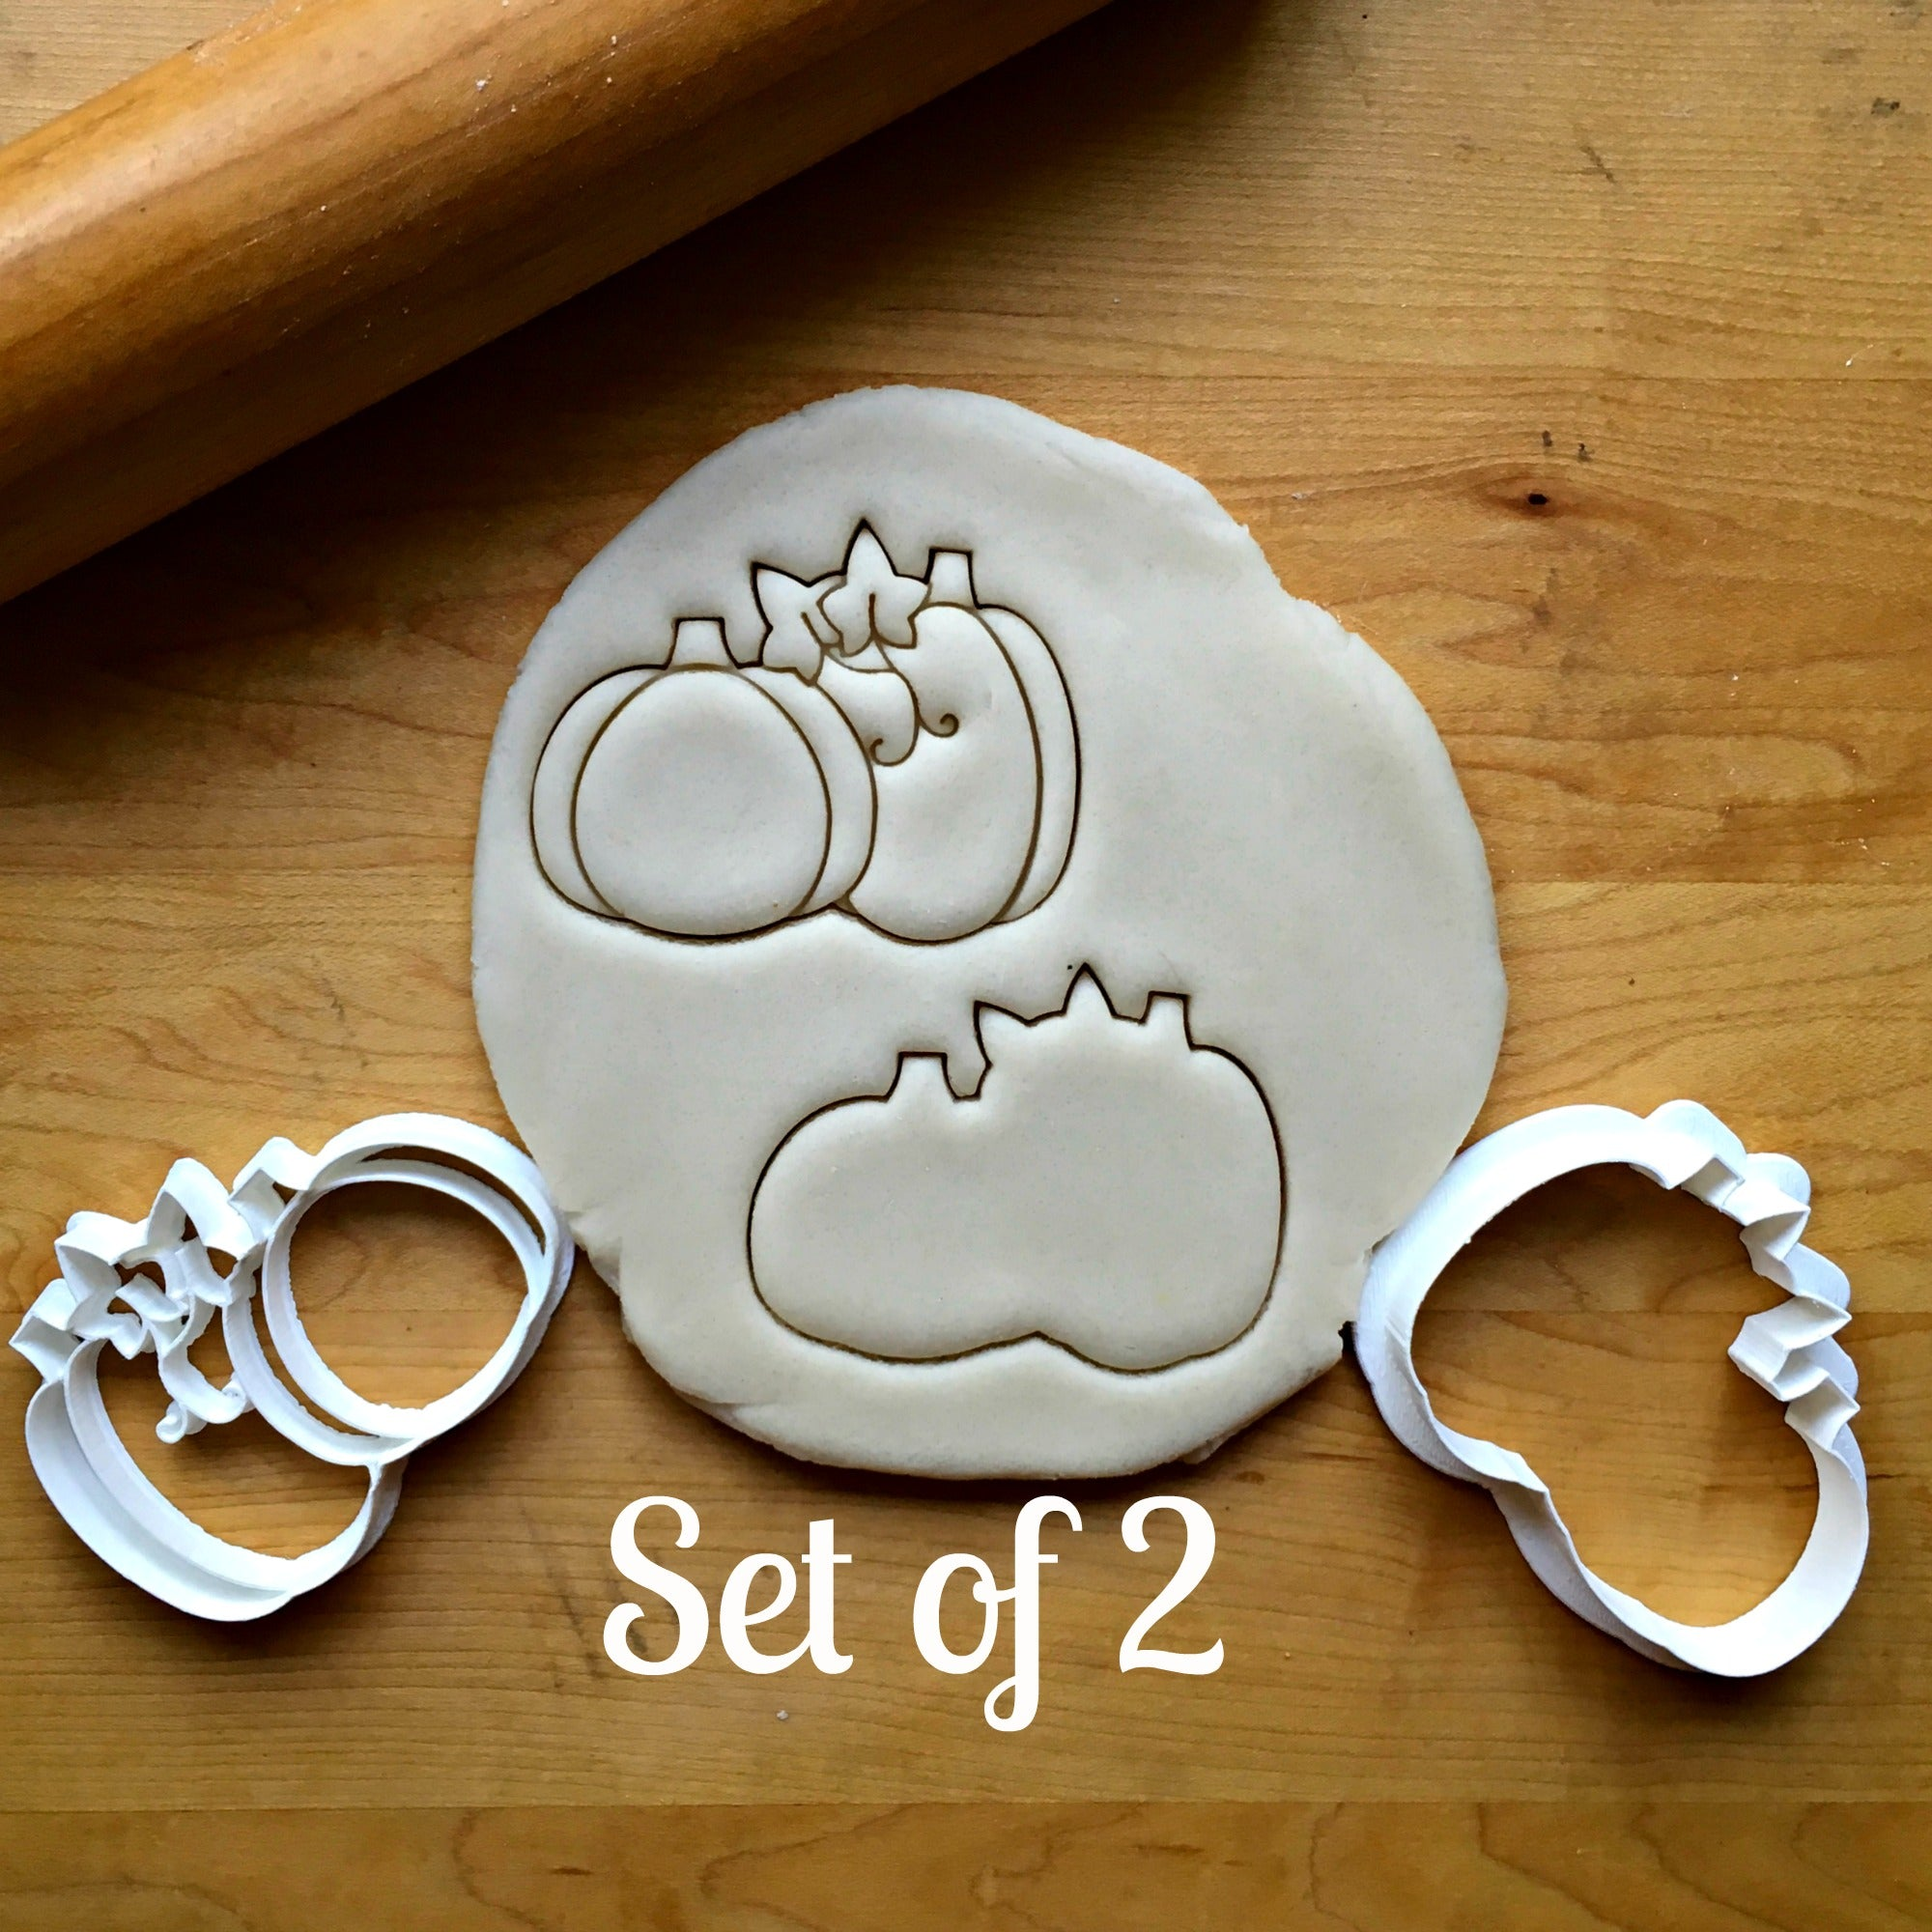 Set of 2 Pumpkin Patch Cookie Cutters/Dishwasher Safe